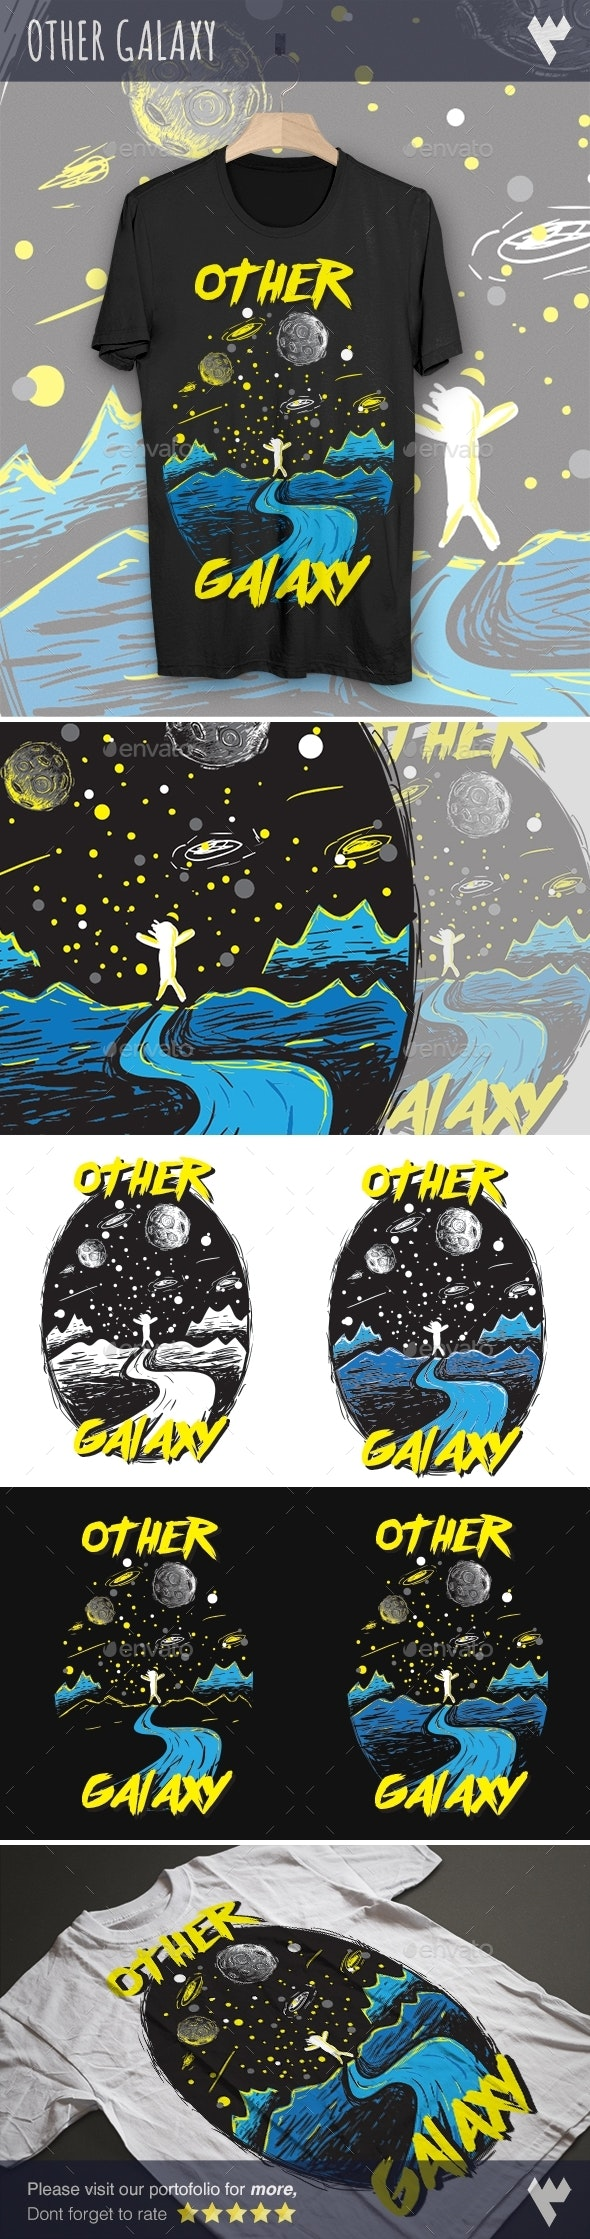 Other Galaxy - Designs T-Shirts